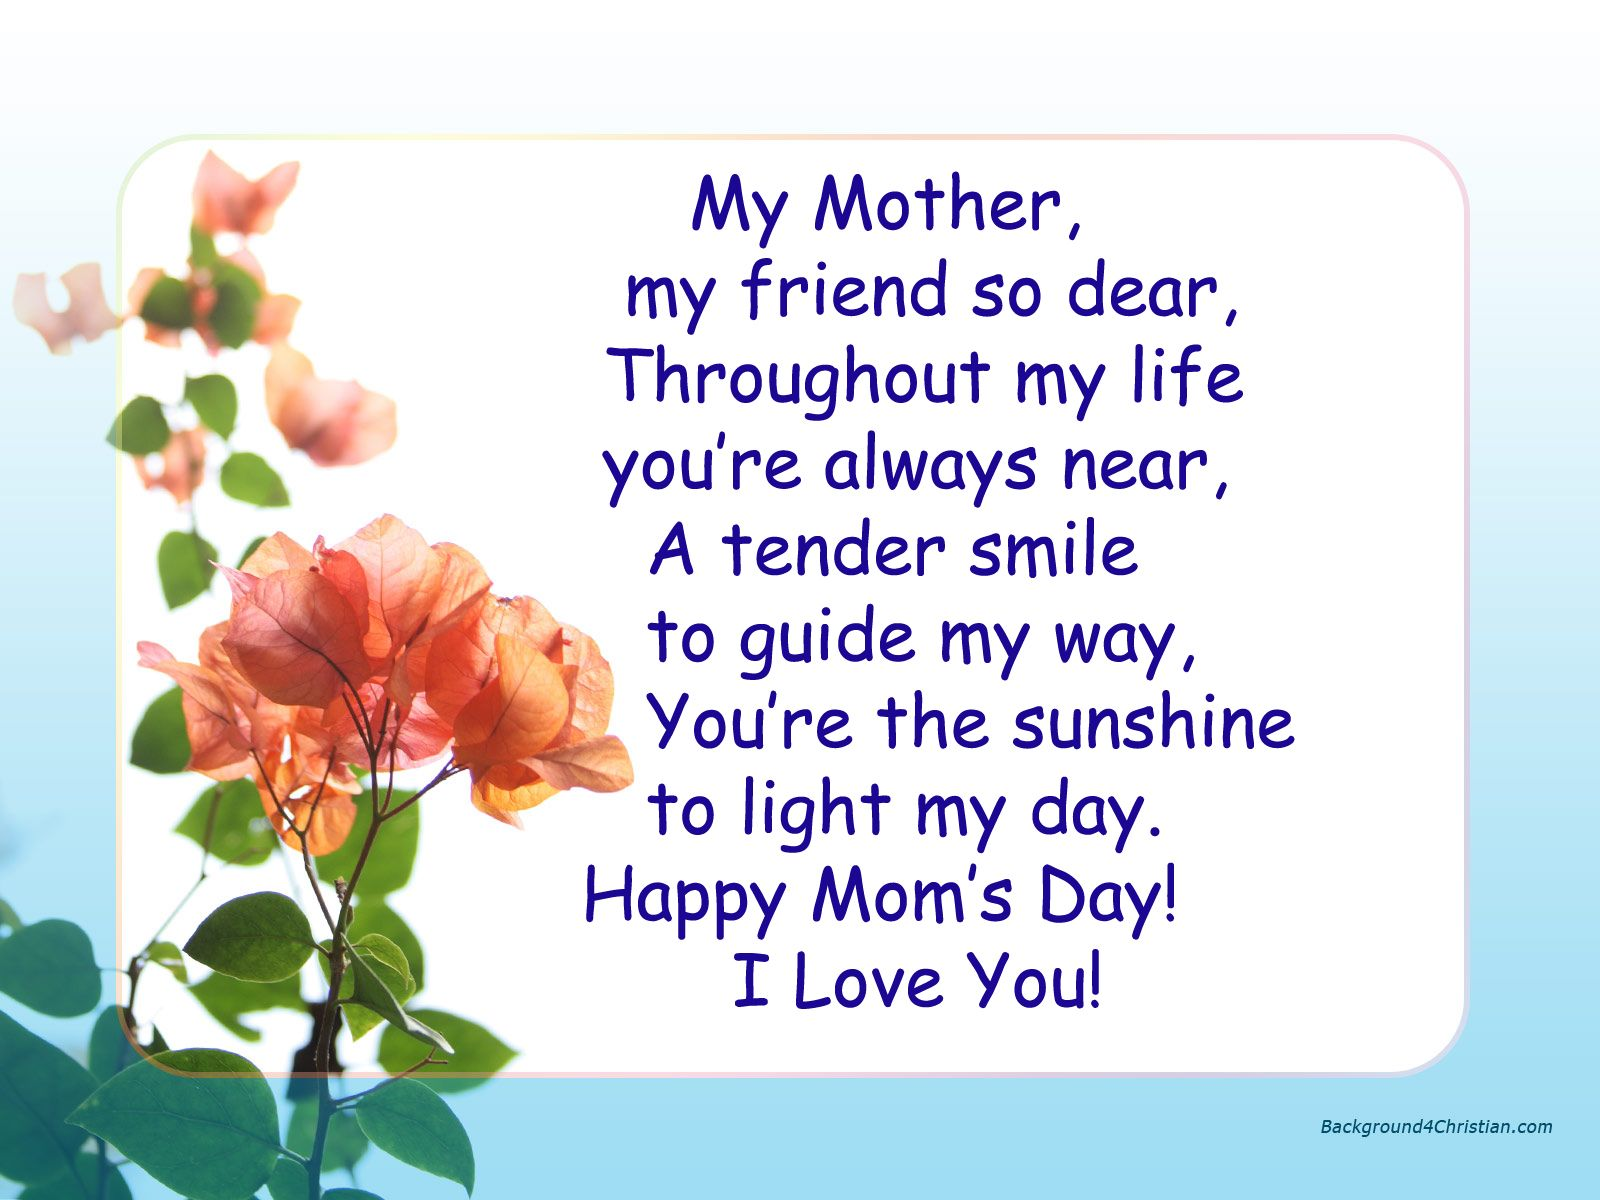 Free mothers day greetingsquotes poems moms day pinterest day free image mother quotes free mothers day greetingsquotes poems answer blog m4hsunfo